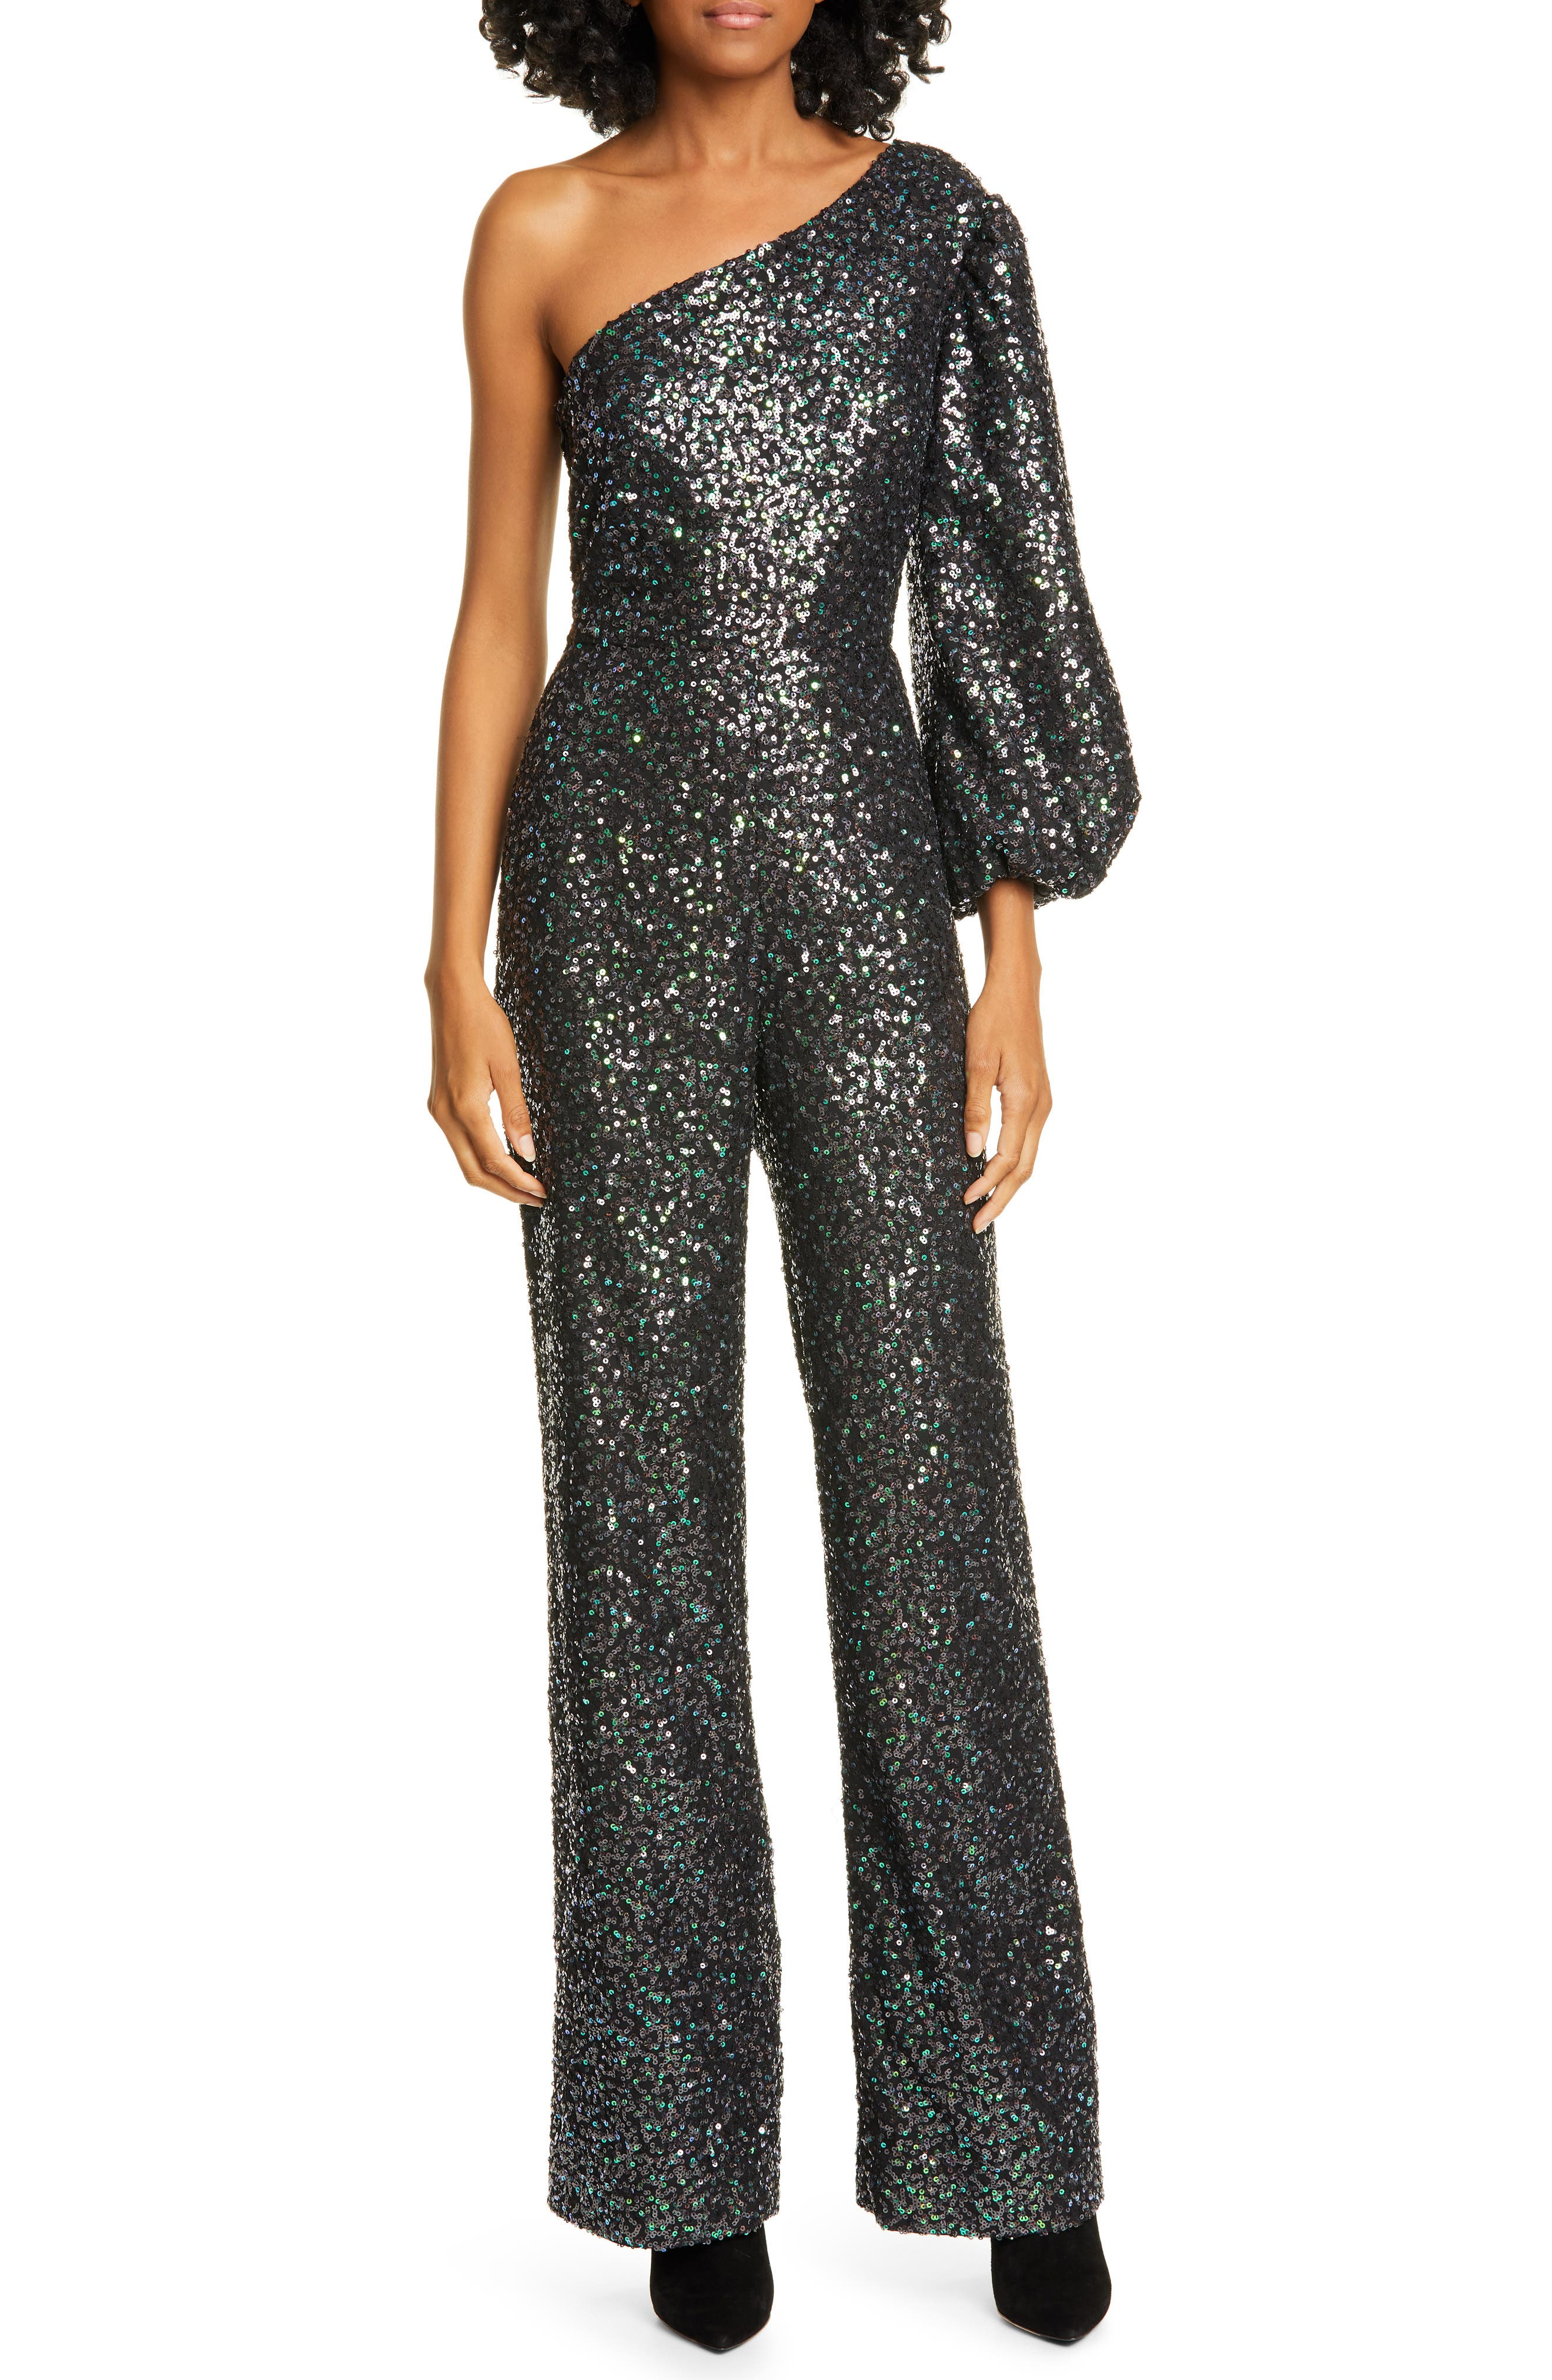 Saloni Suits Lily One-Shoulder Sequin Jumpsuit